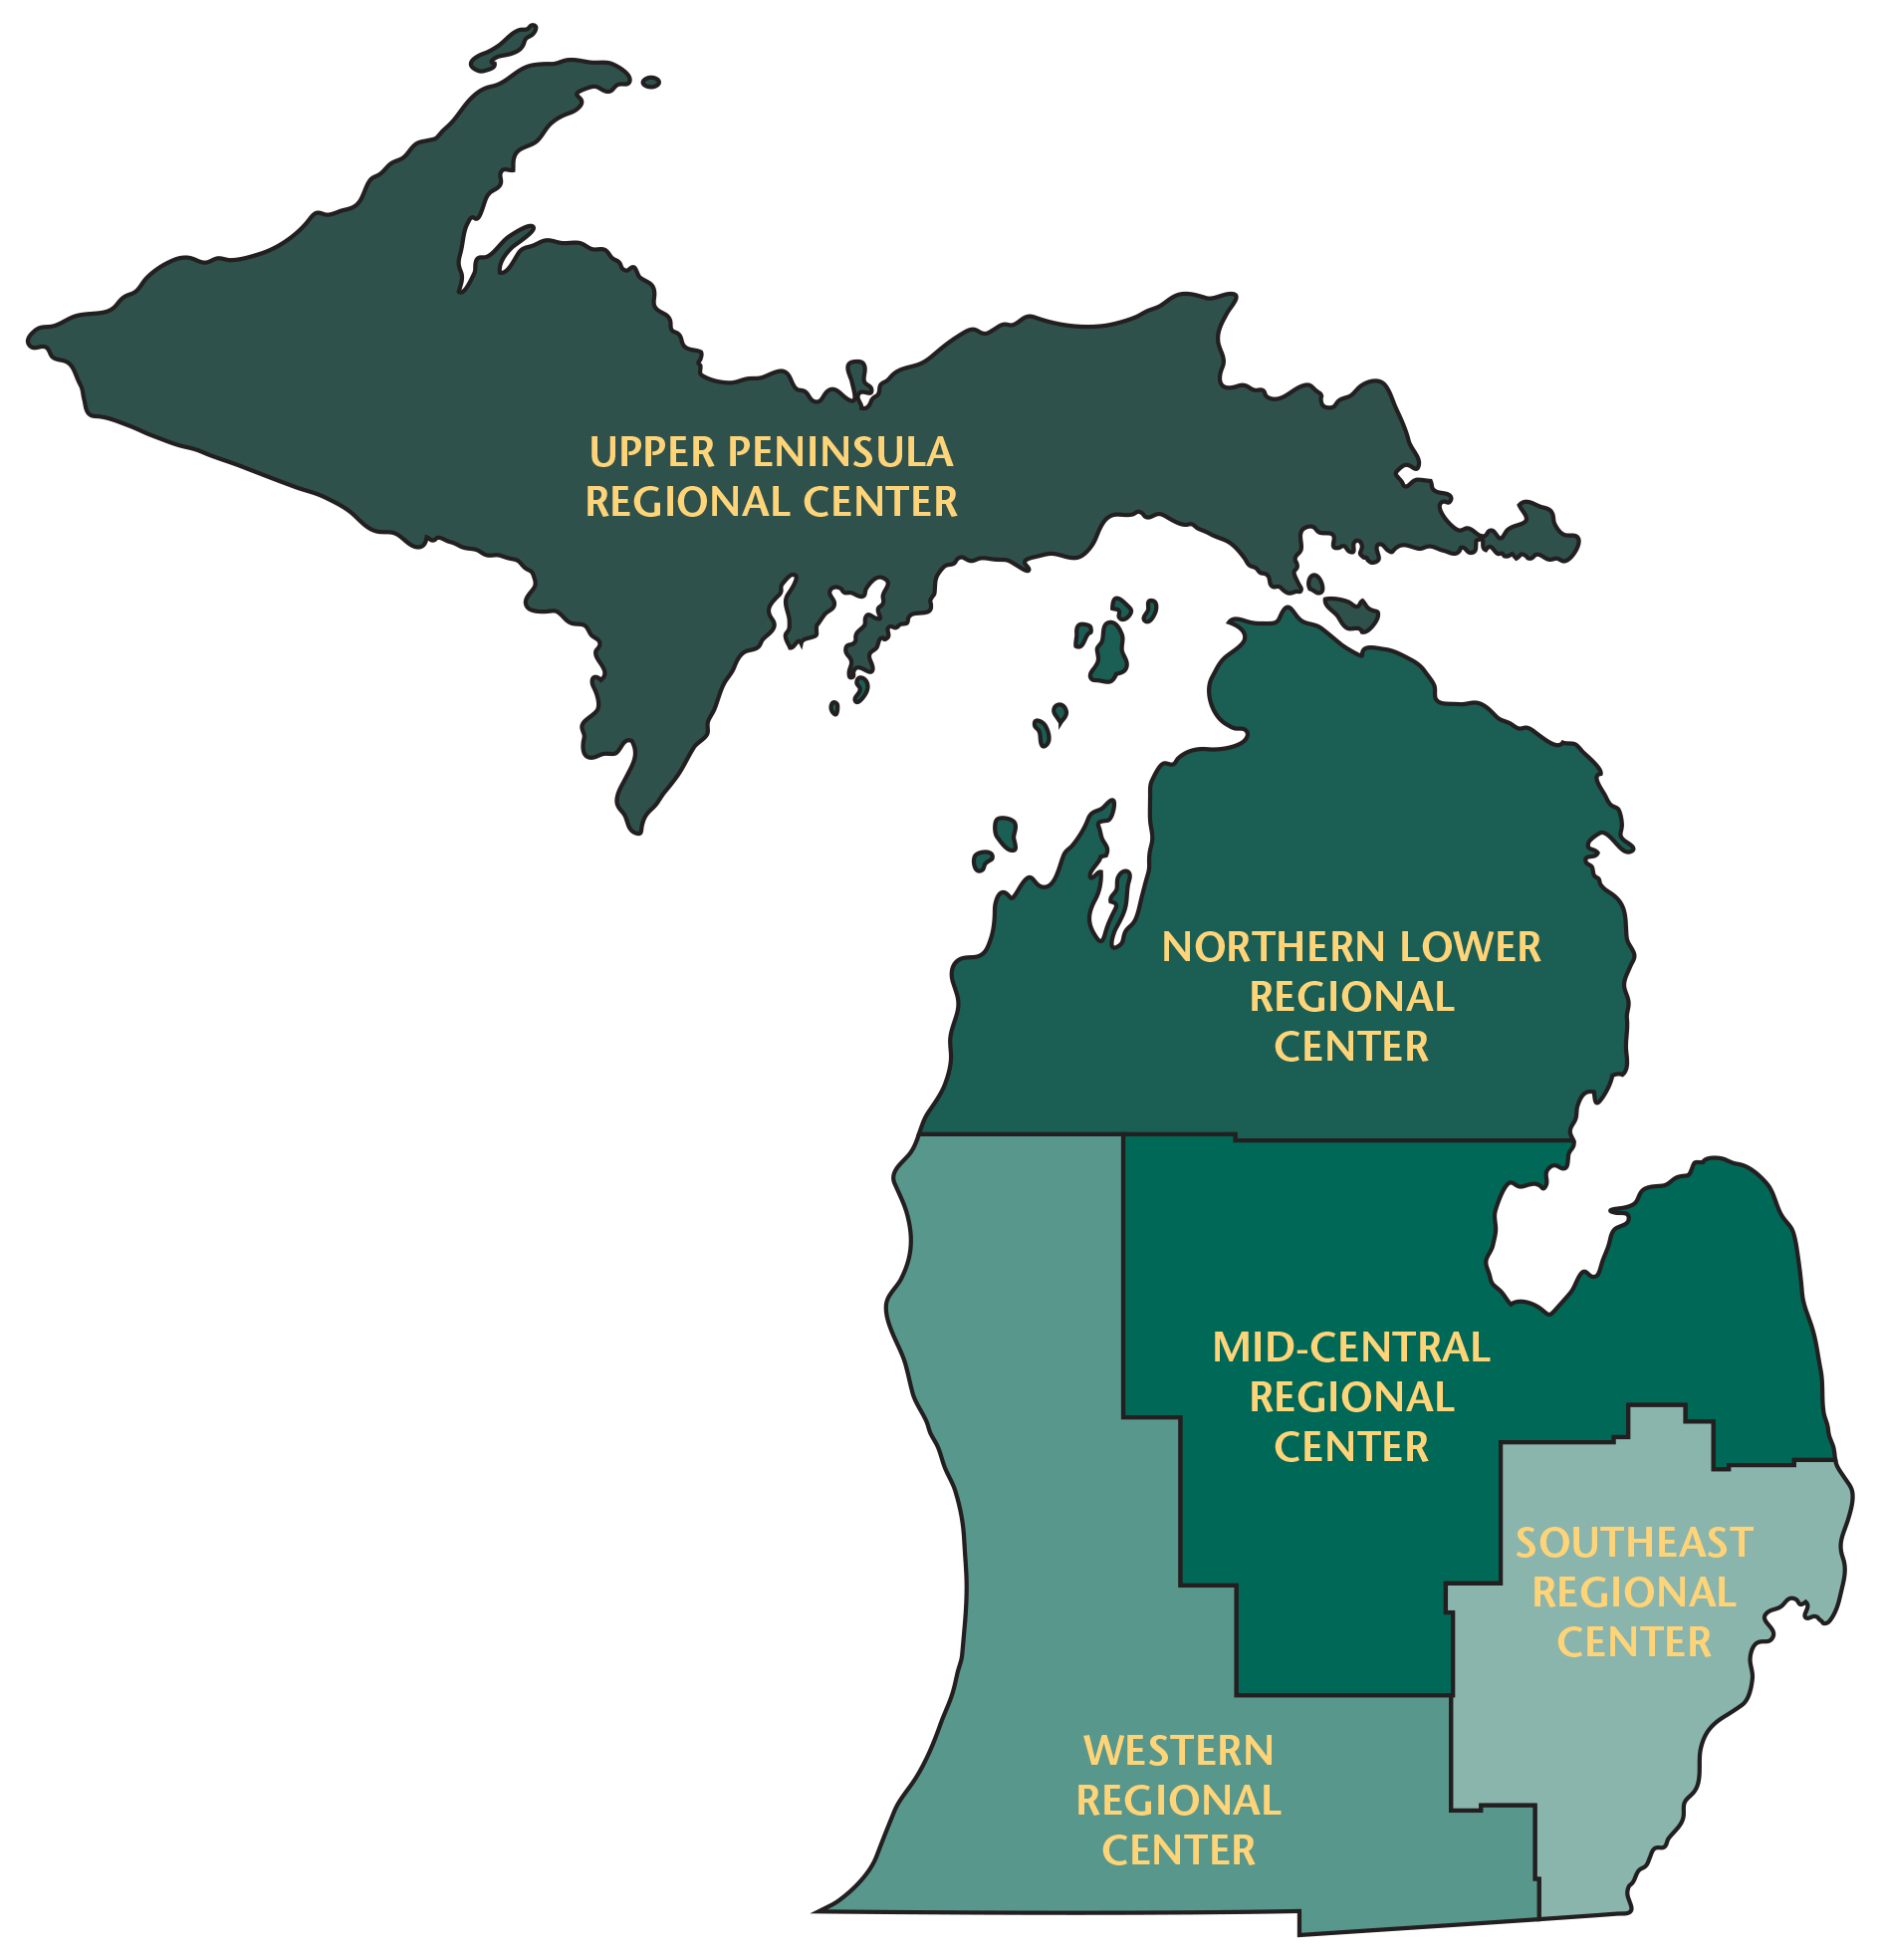 Michigan AHEC Awarded HRSA Funding to Help Address Opioid